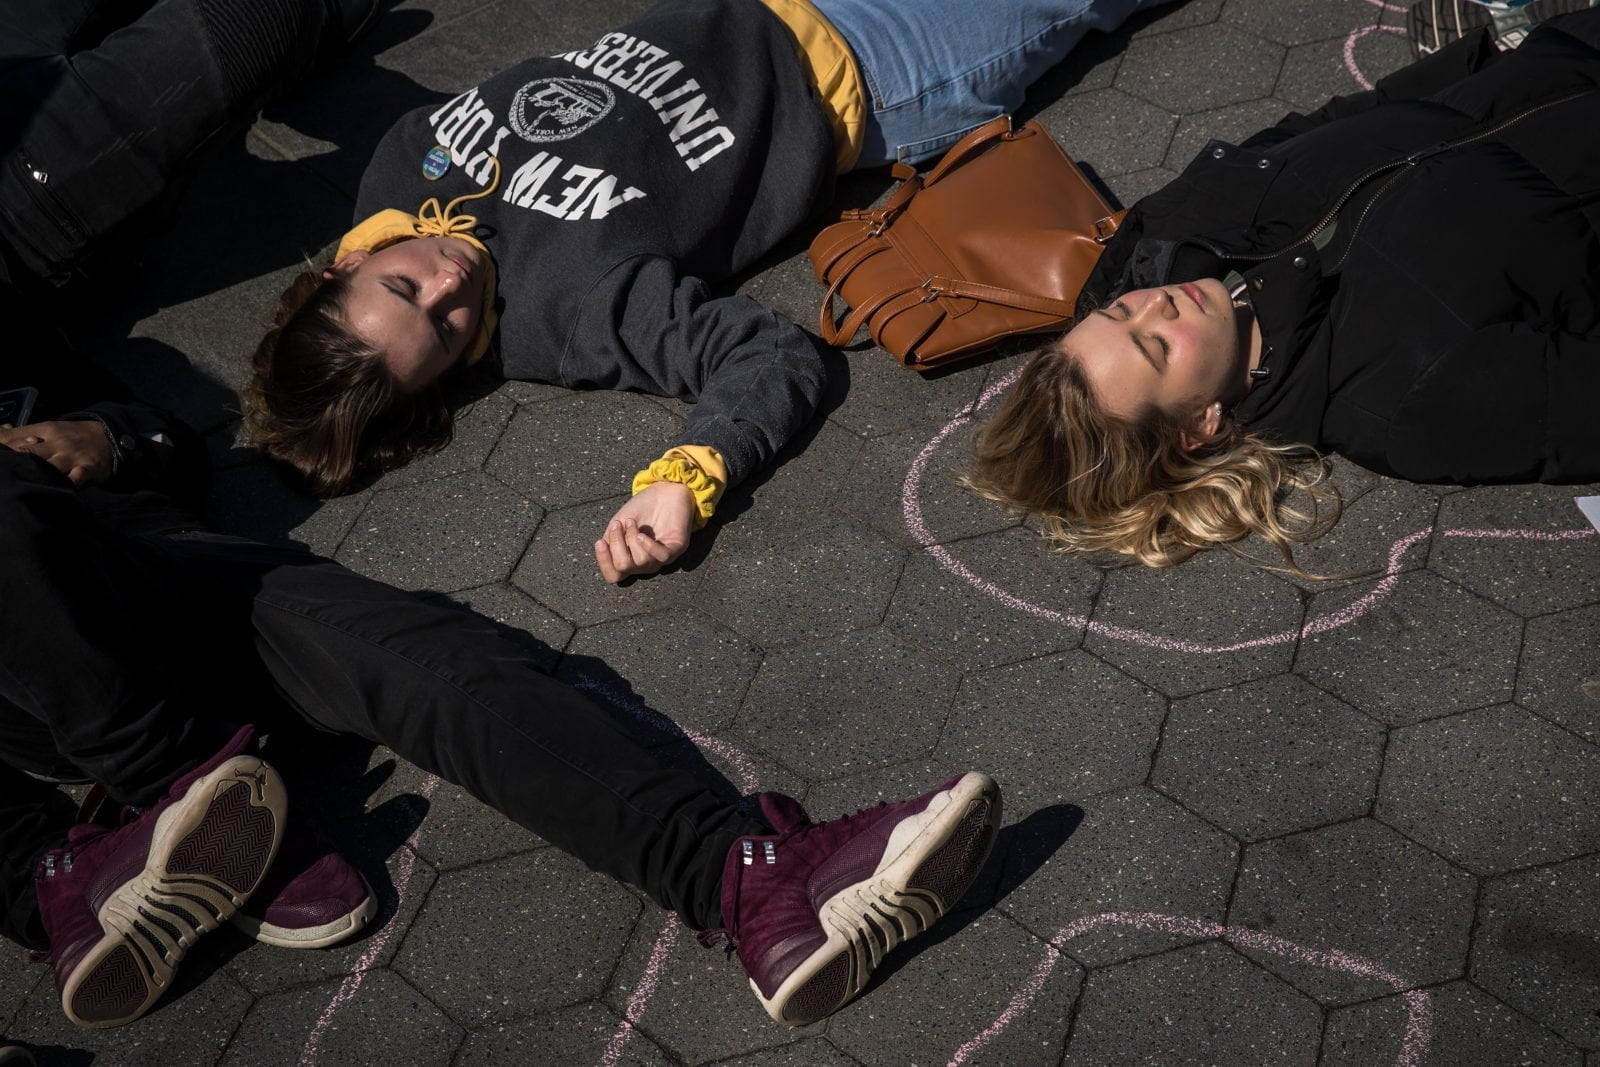 NEW YORK, NY - APRIL 20: Student activists participate in a 'die-in' to protest gun violence at Washington Square Park, near the campus of New York University, April 20, 2018 in New York City. On the anniversary of the 1999 Columbine High School mass shooting, student activists across the country are participating in school walkouts to demand action on gun reform. (Photo by Drew Angerer/Getty Images)